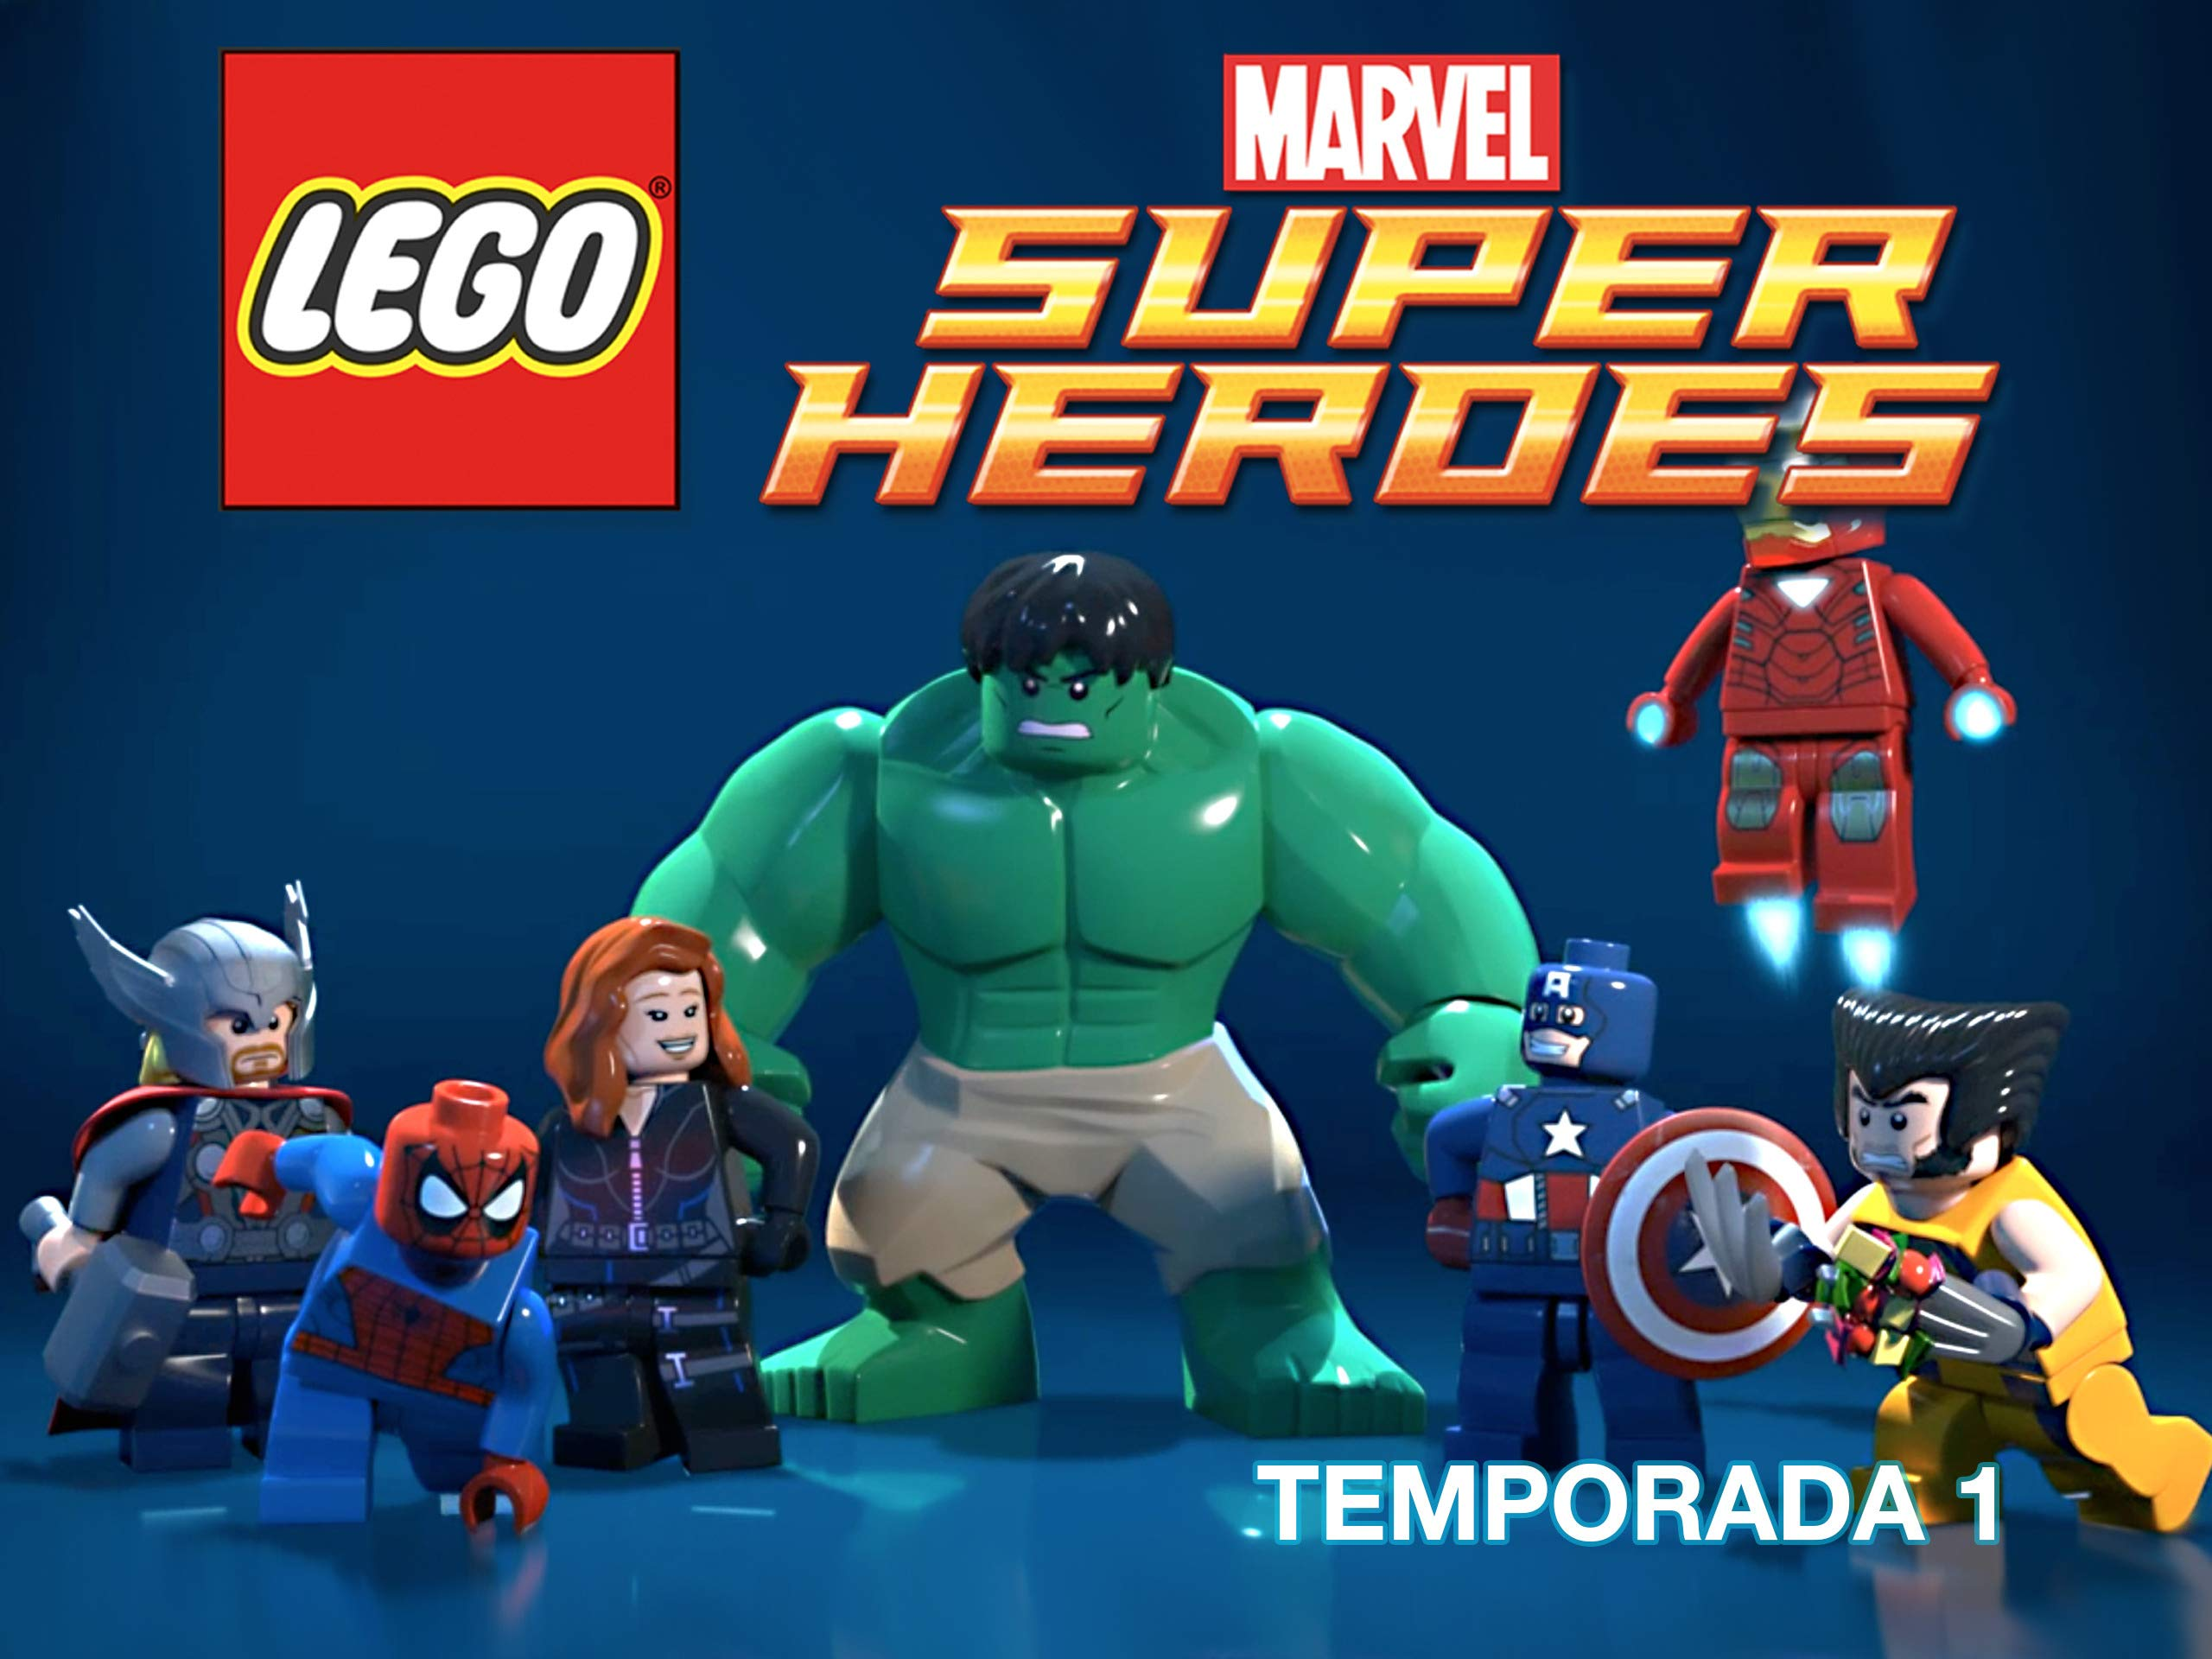 Amazon.com: LEGO Marvel Super Heroes - Season 1 [Español]